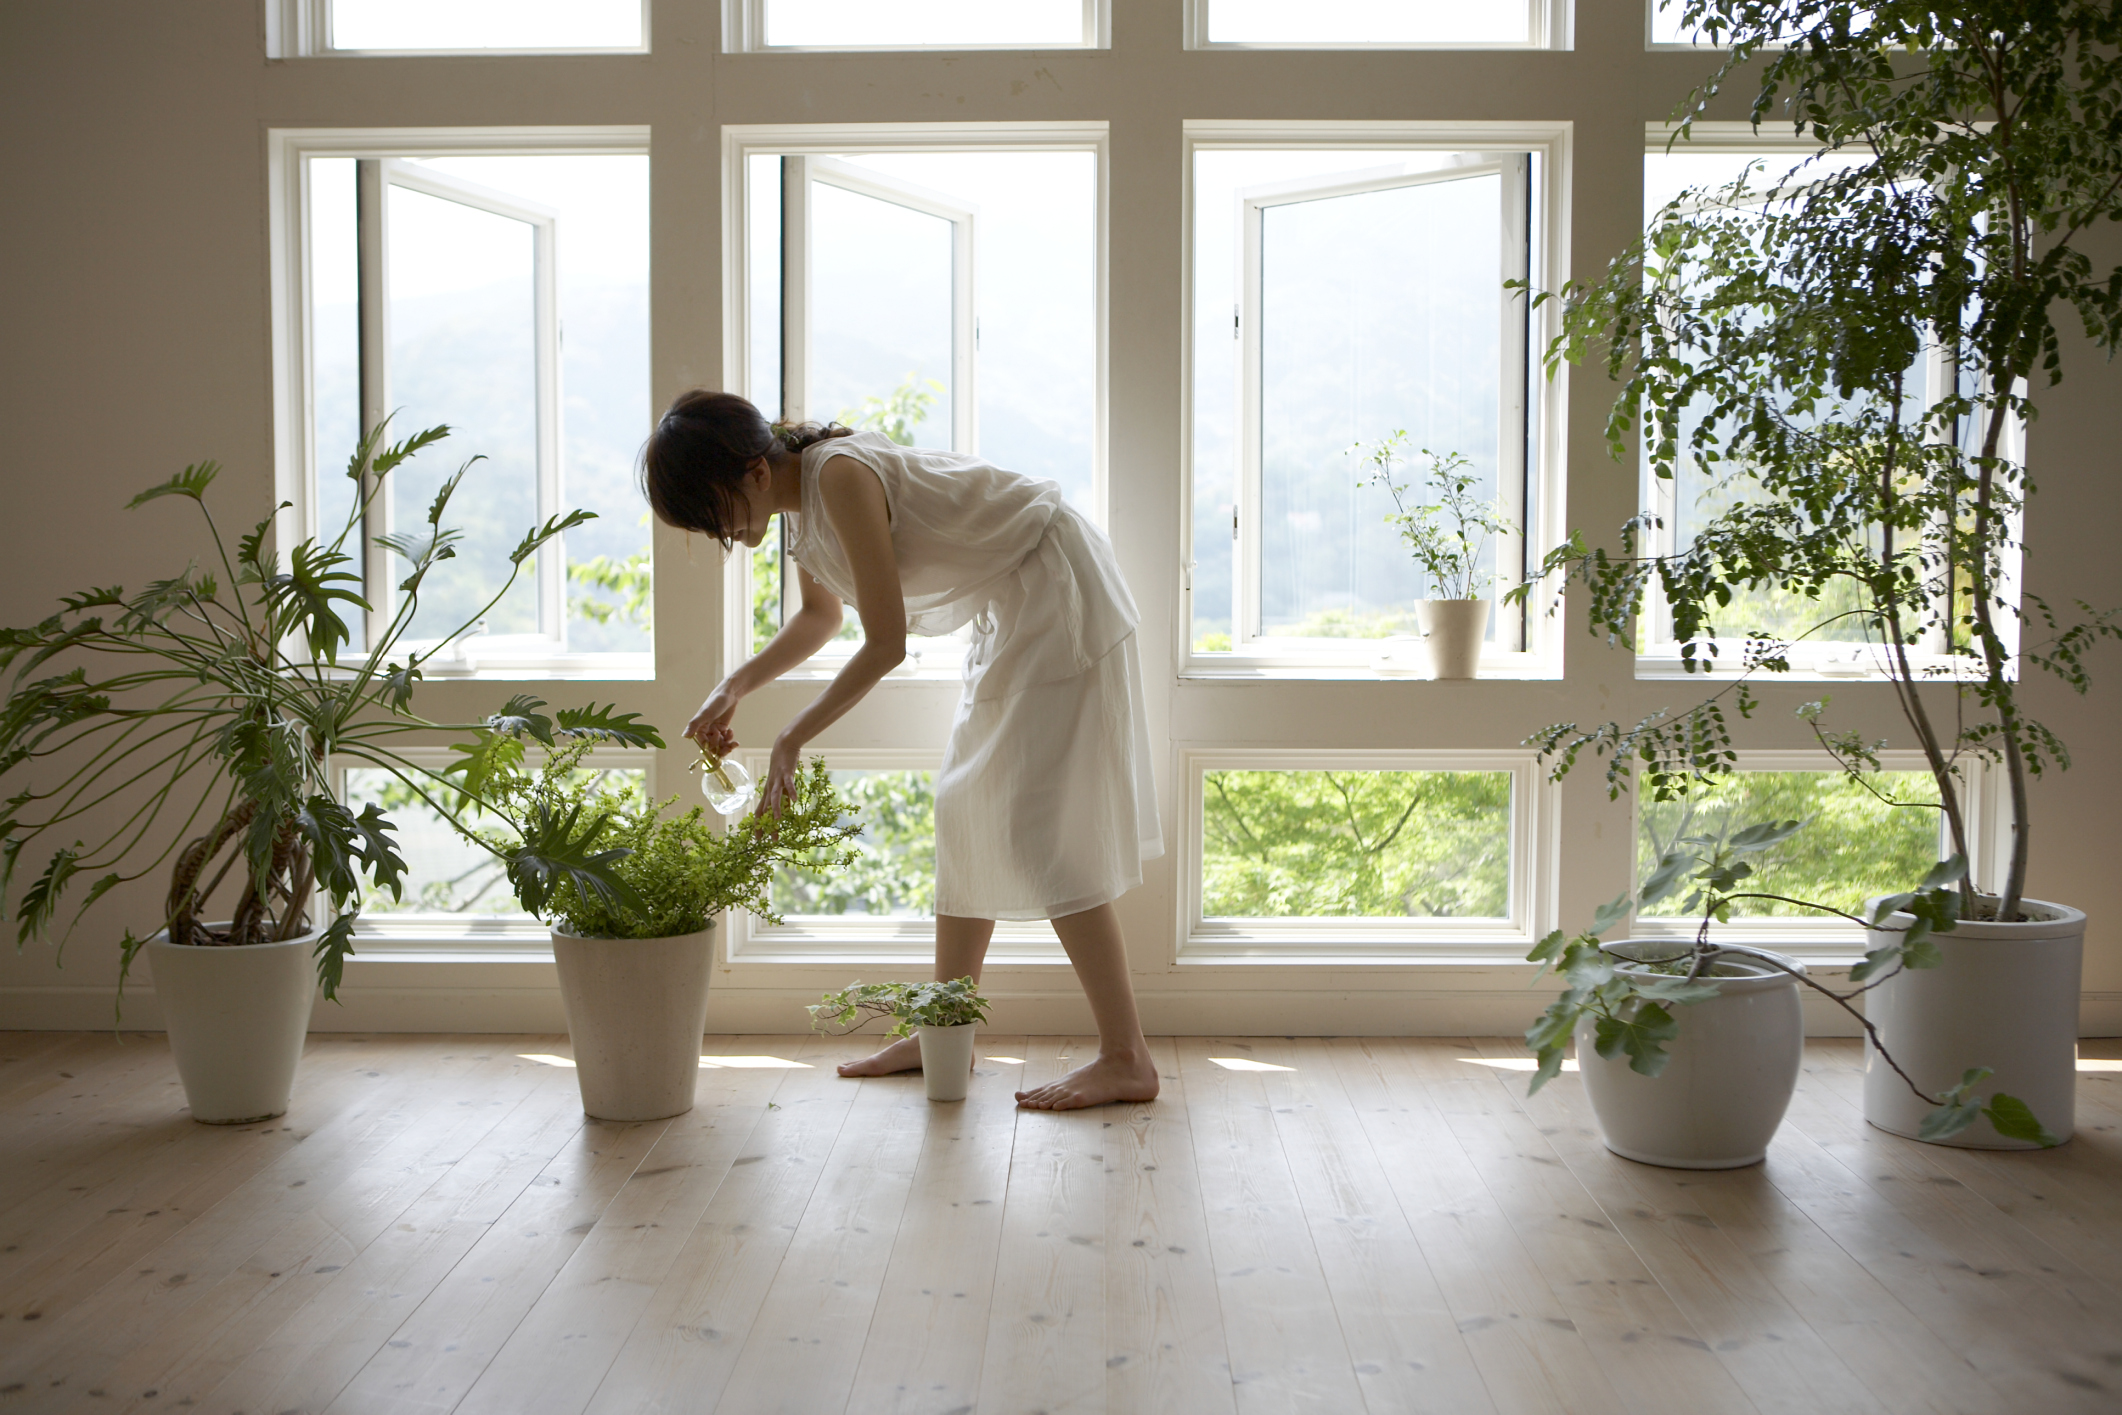 Best Indoor Plants For Clean Air 6 Natural Air Purifiers In Your Home